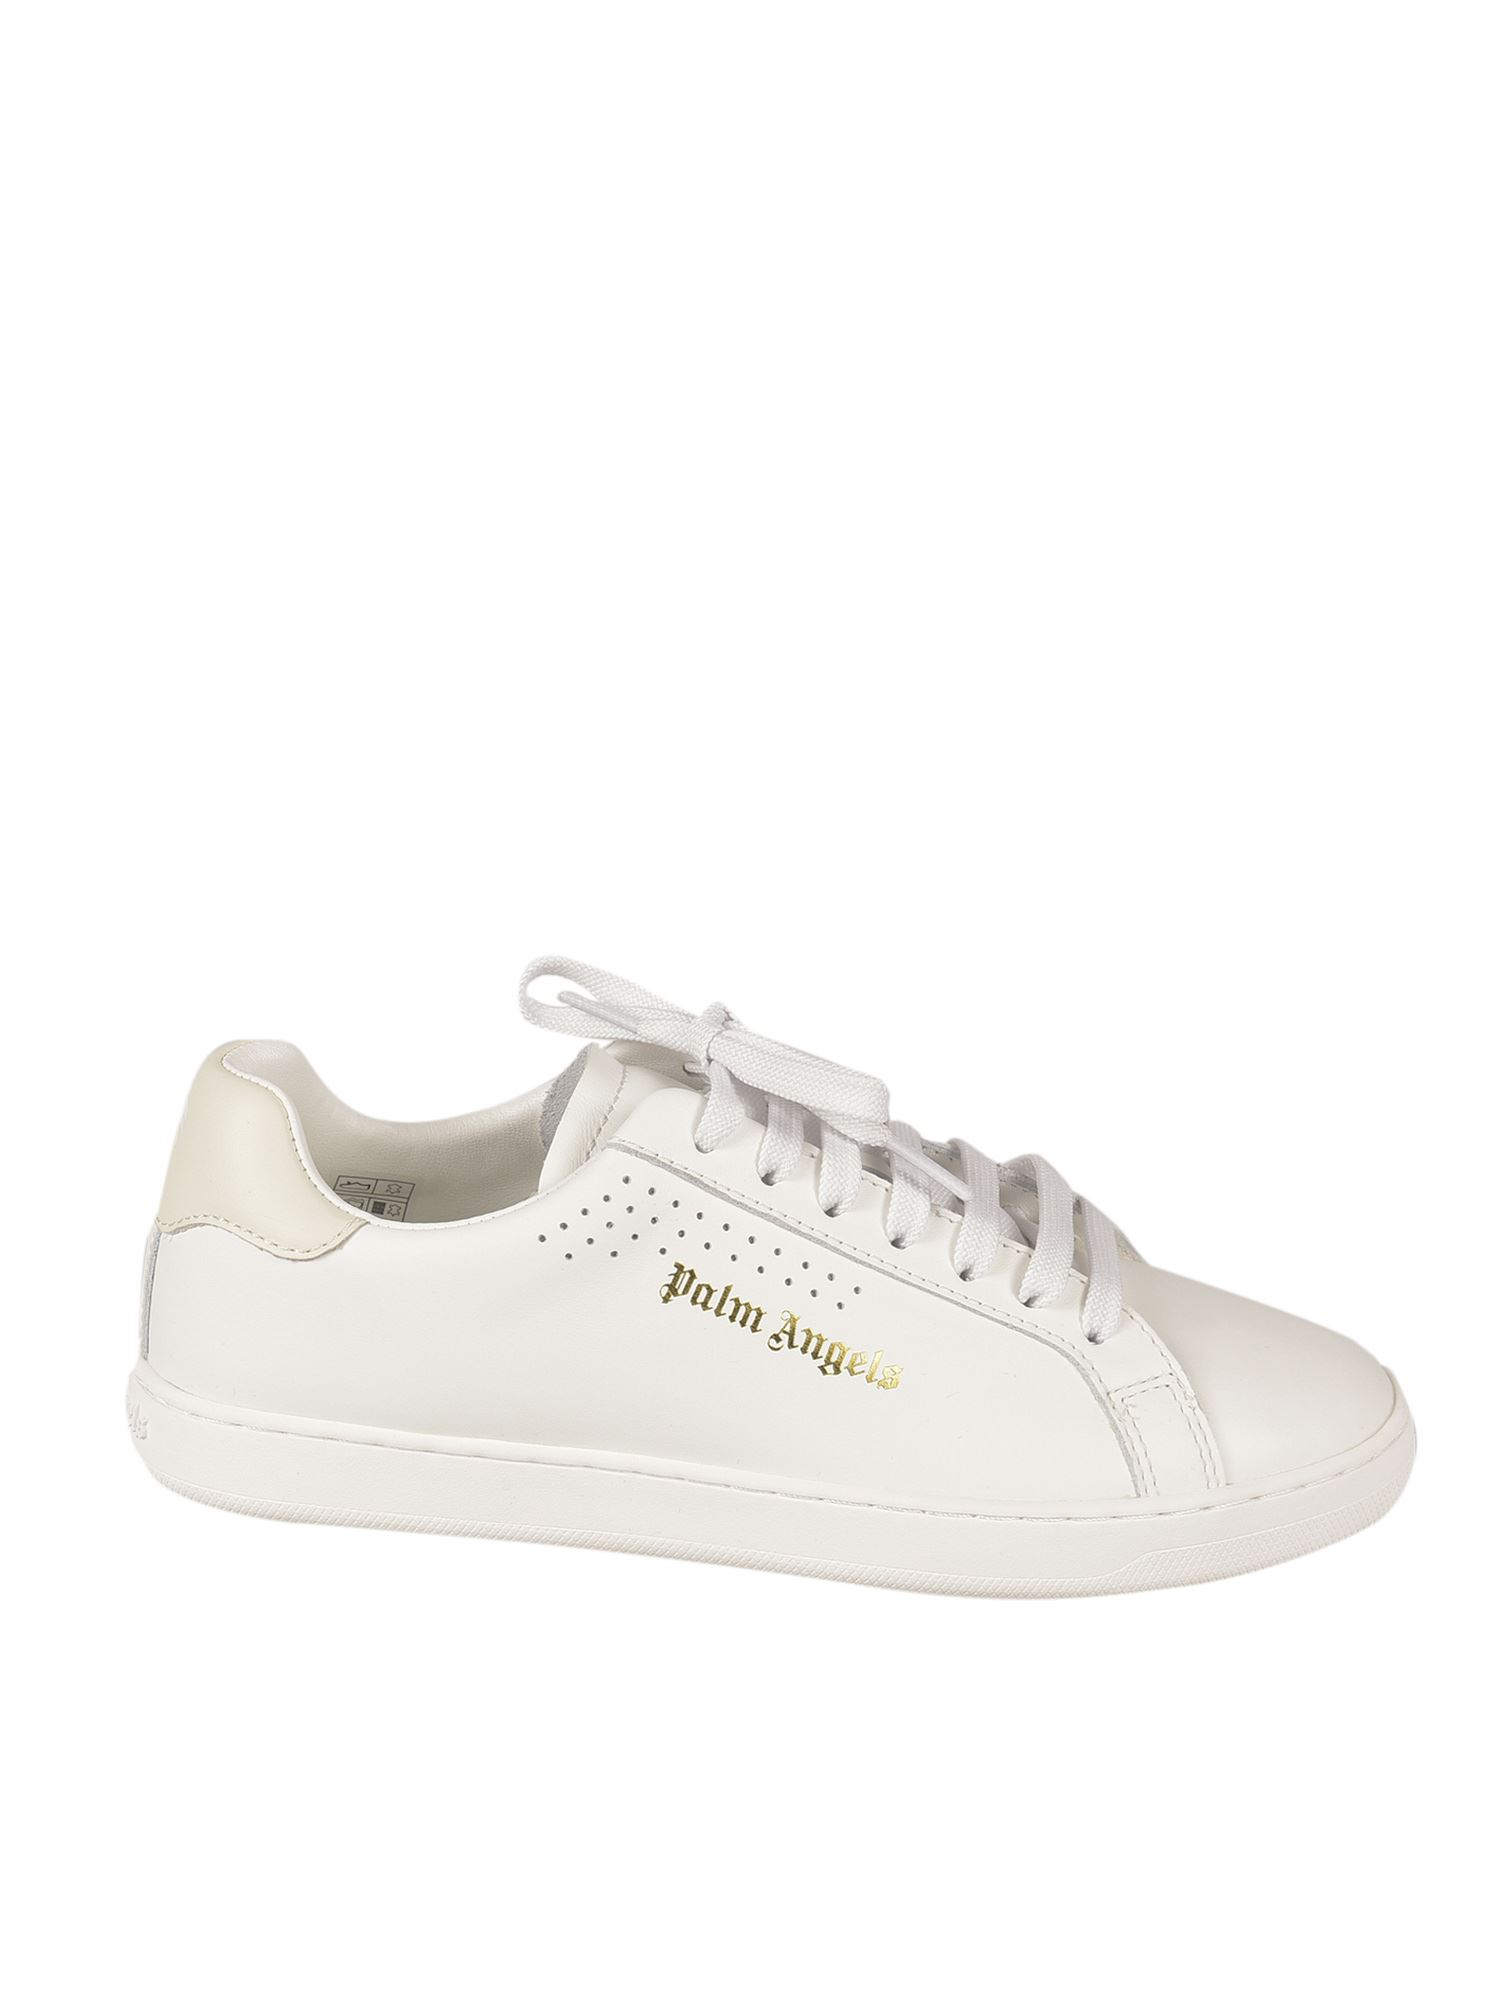 Palm Angels LOGO SNEAKERS IN WHITE